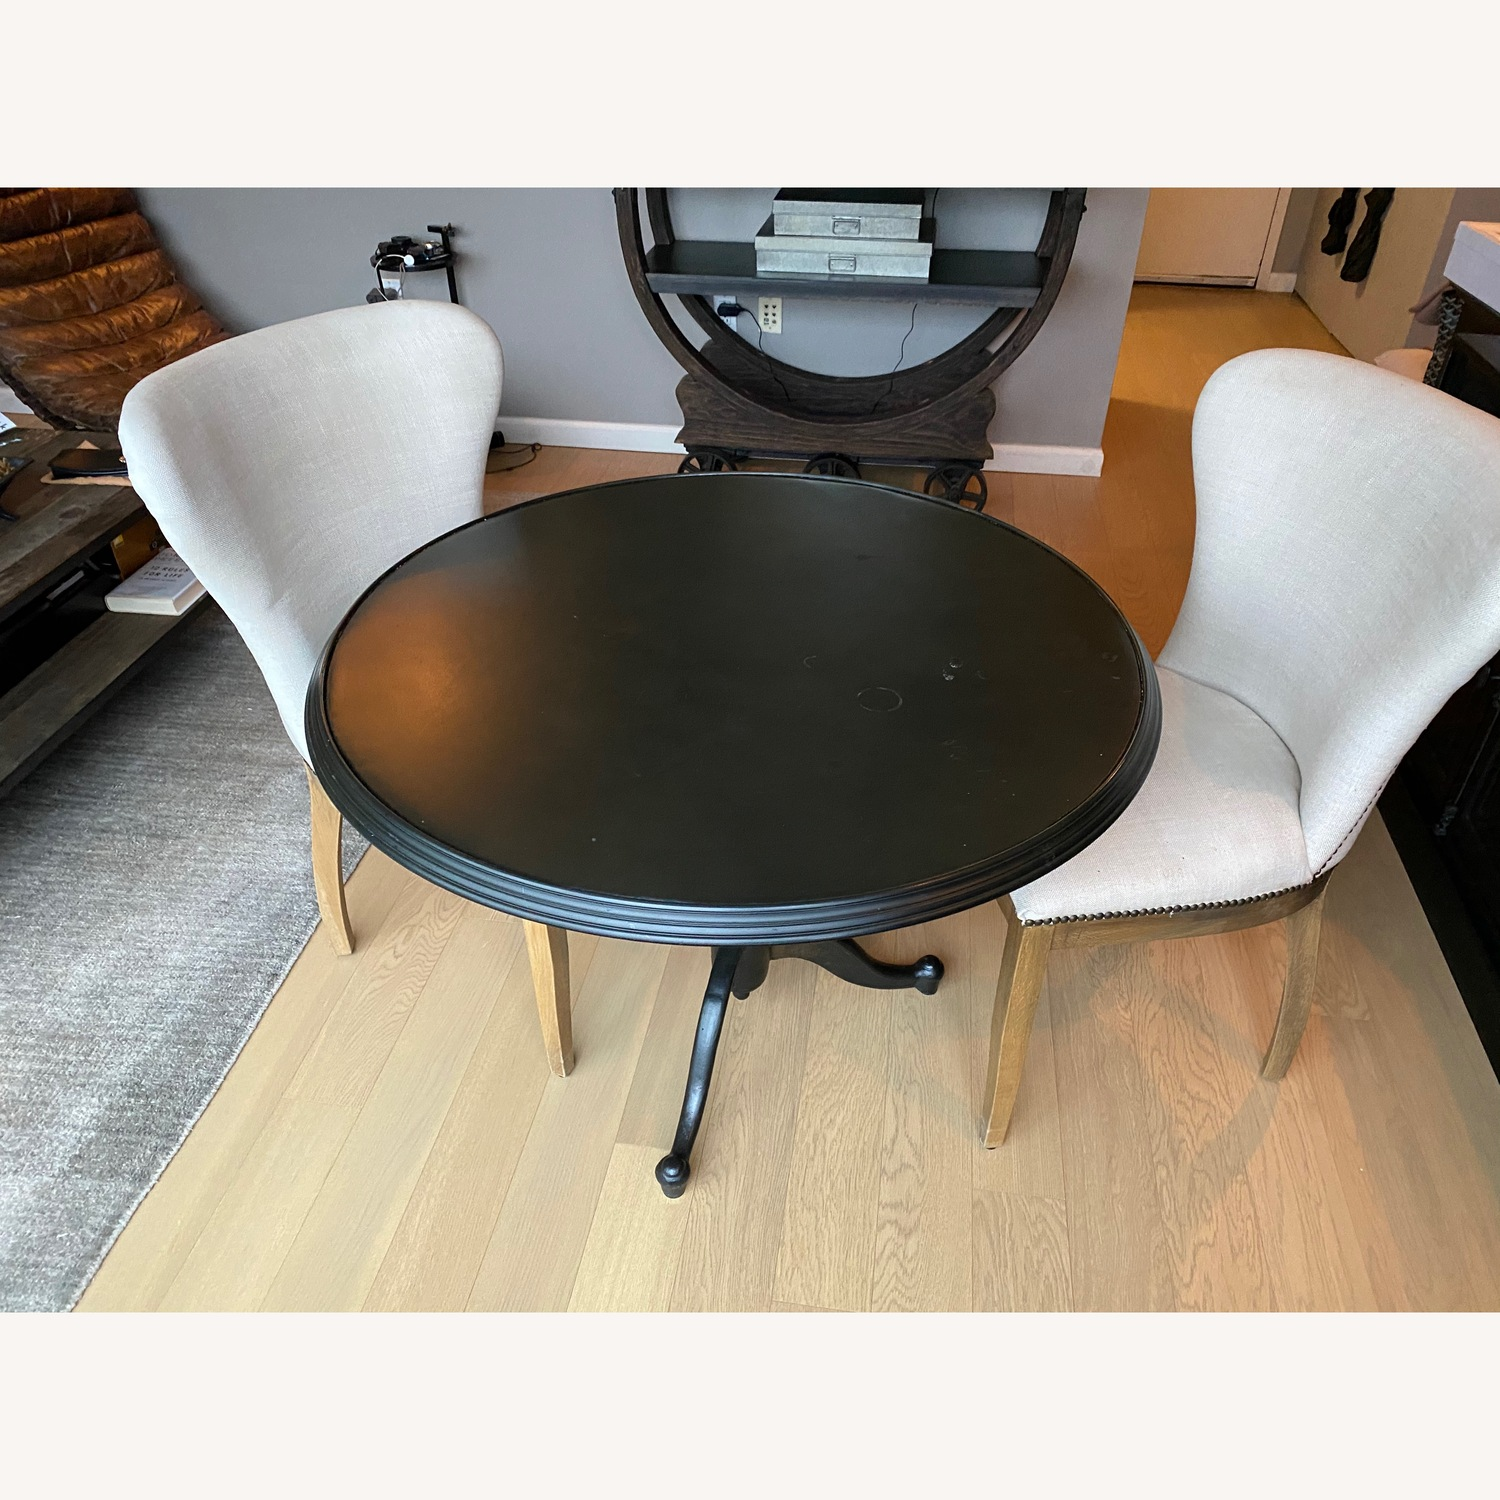 Restoration Hardware Dining Table with 2 Chairs - image-1